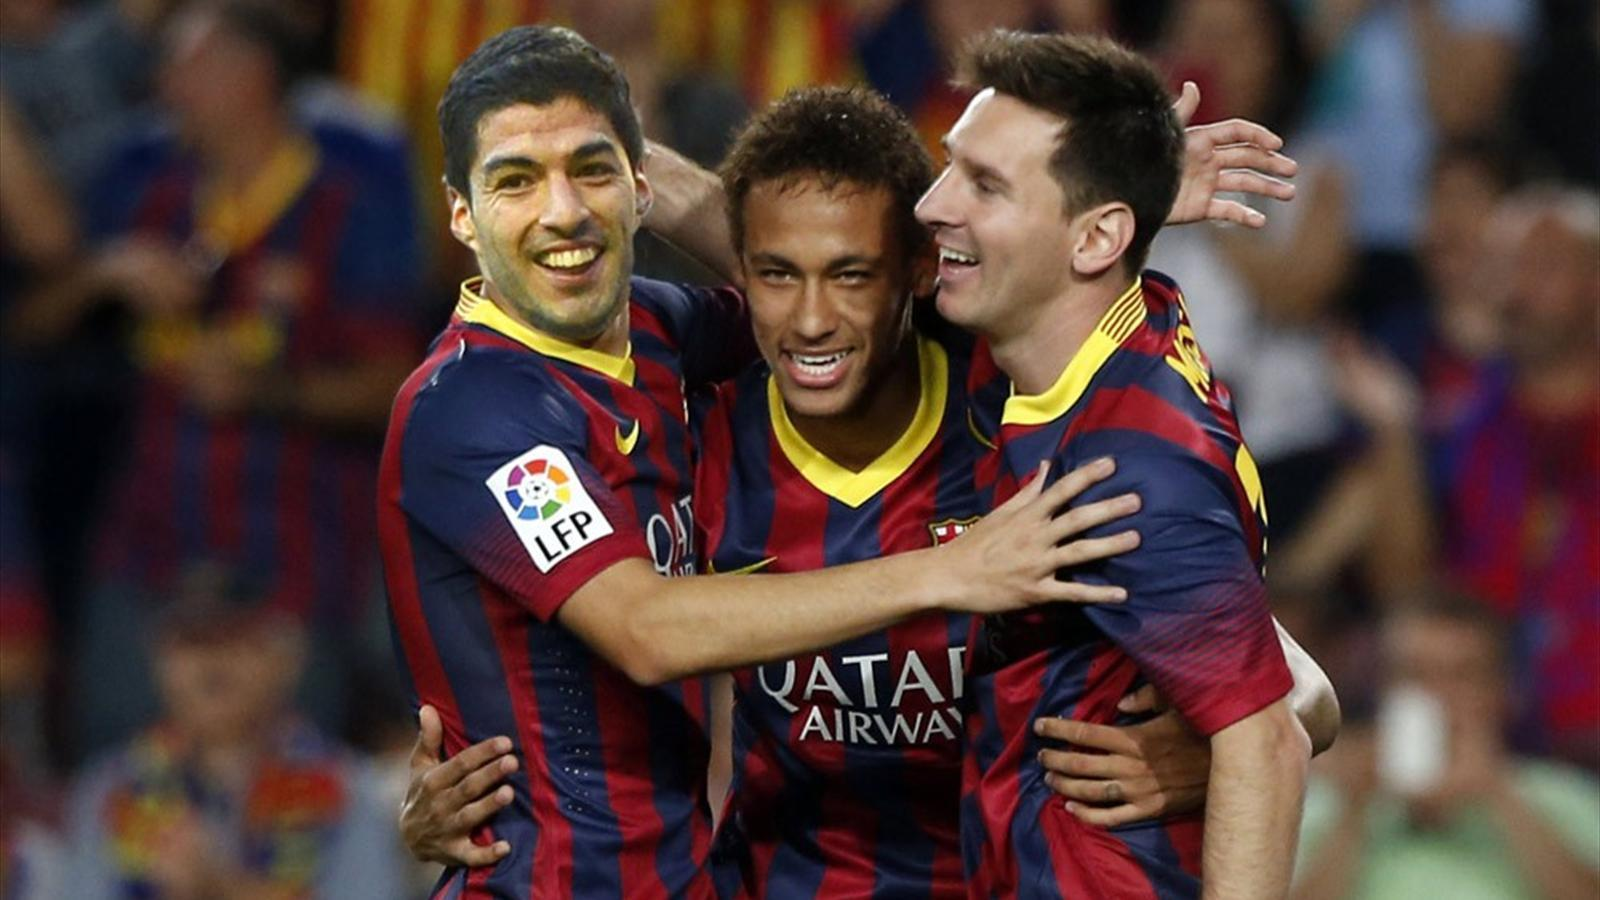 Messi, Neymar and Suarez in action photo for best desktop